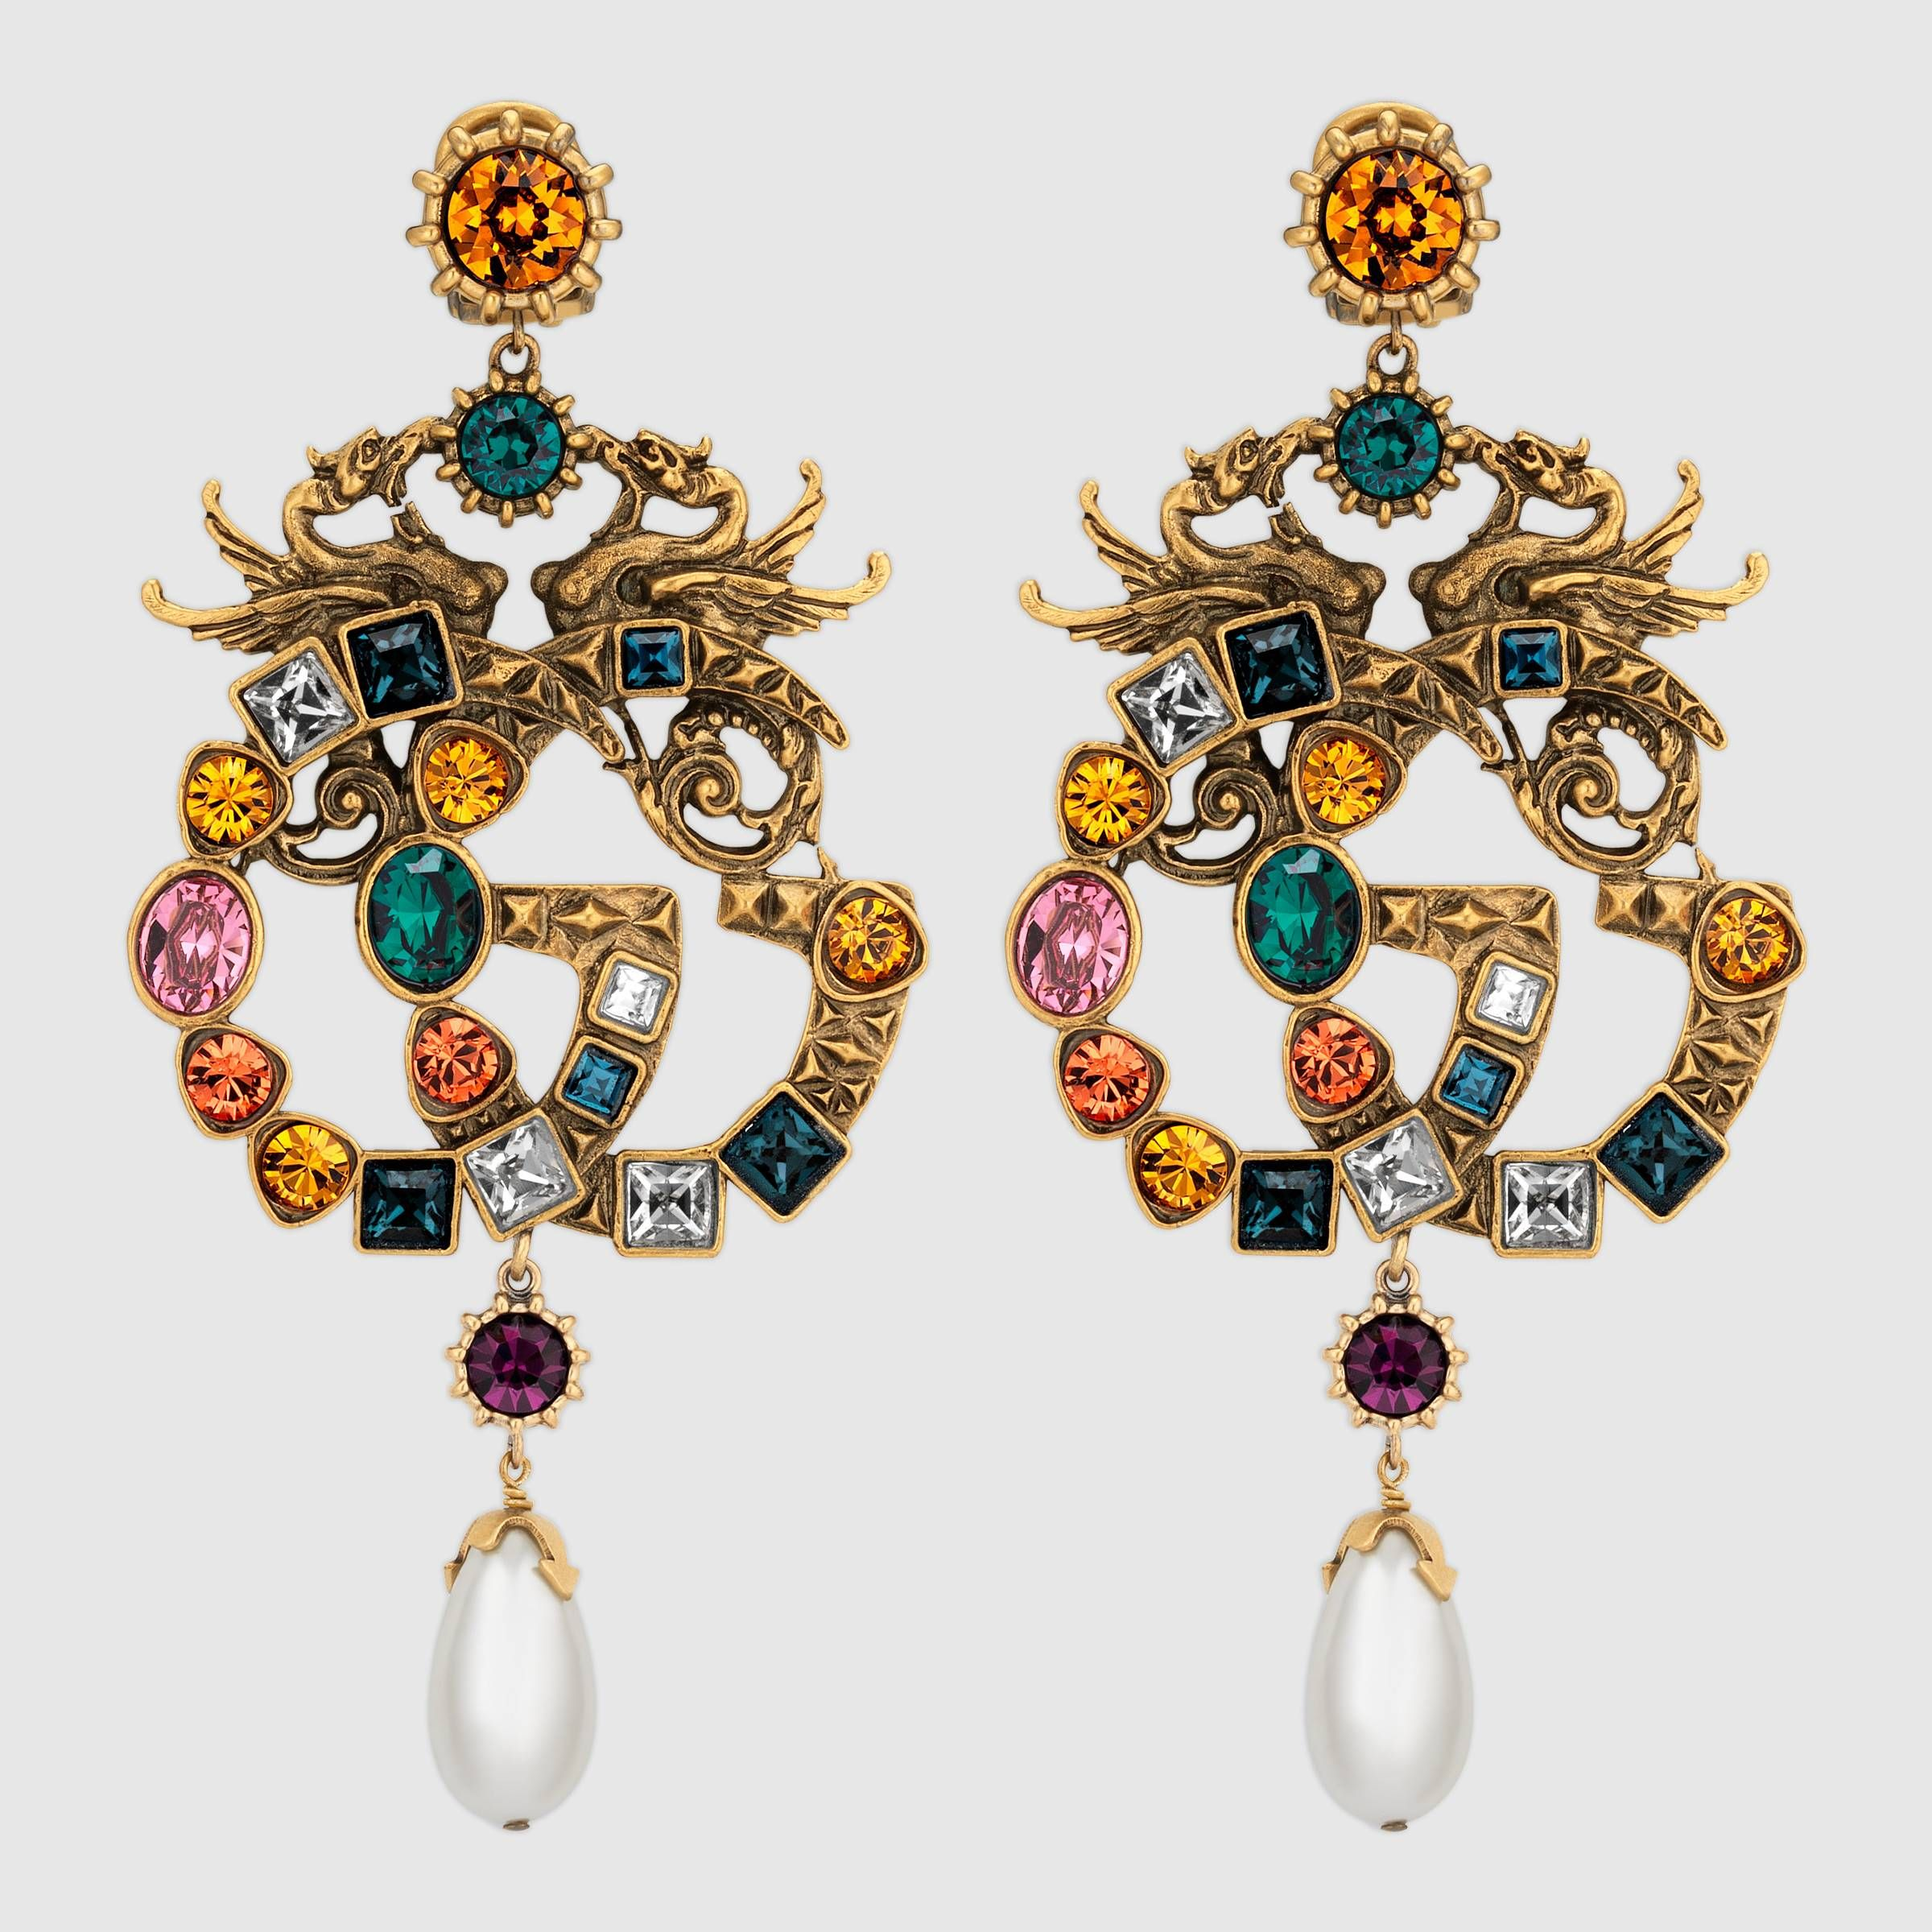 6e4bde57d1 Crystal Double G earrings | Accessories | Gucci jewelry, Jewelry ...